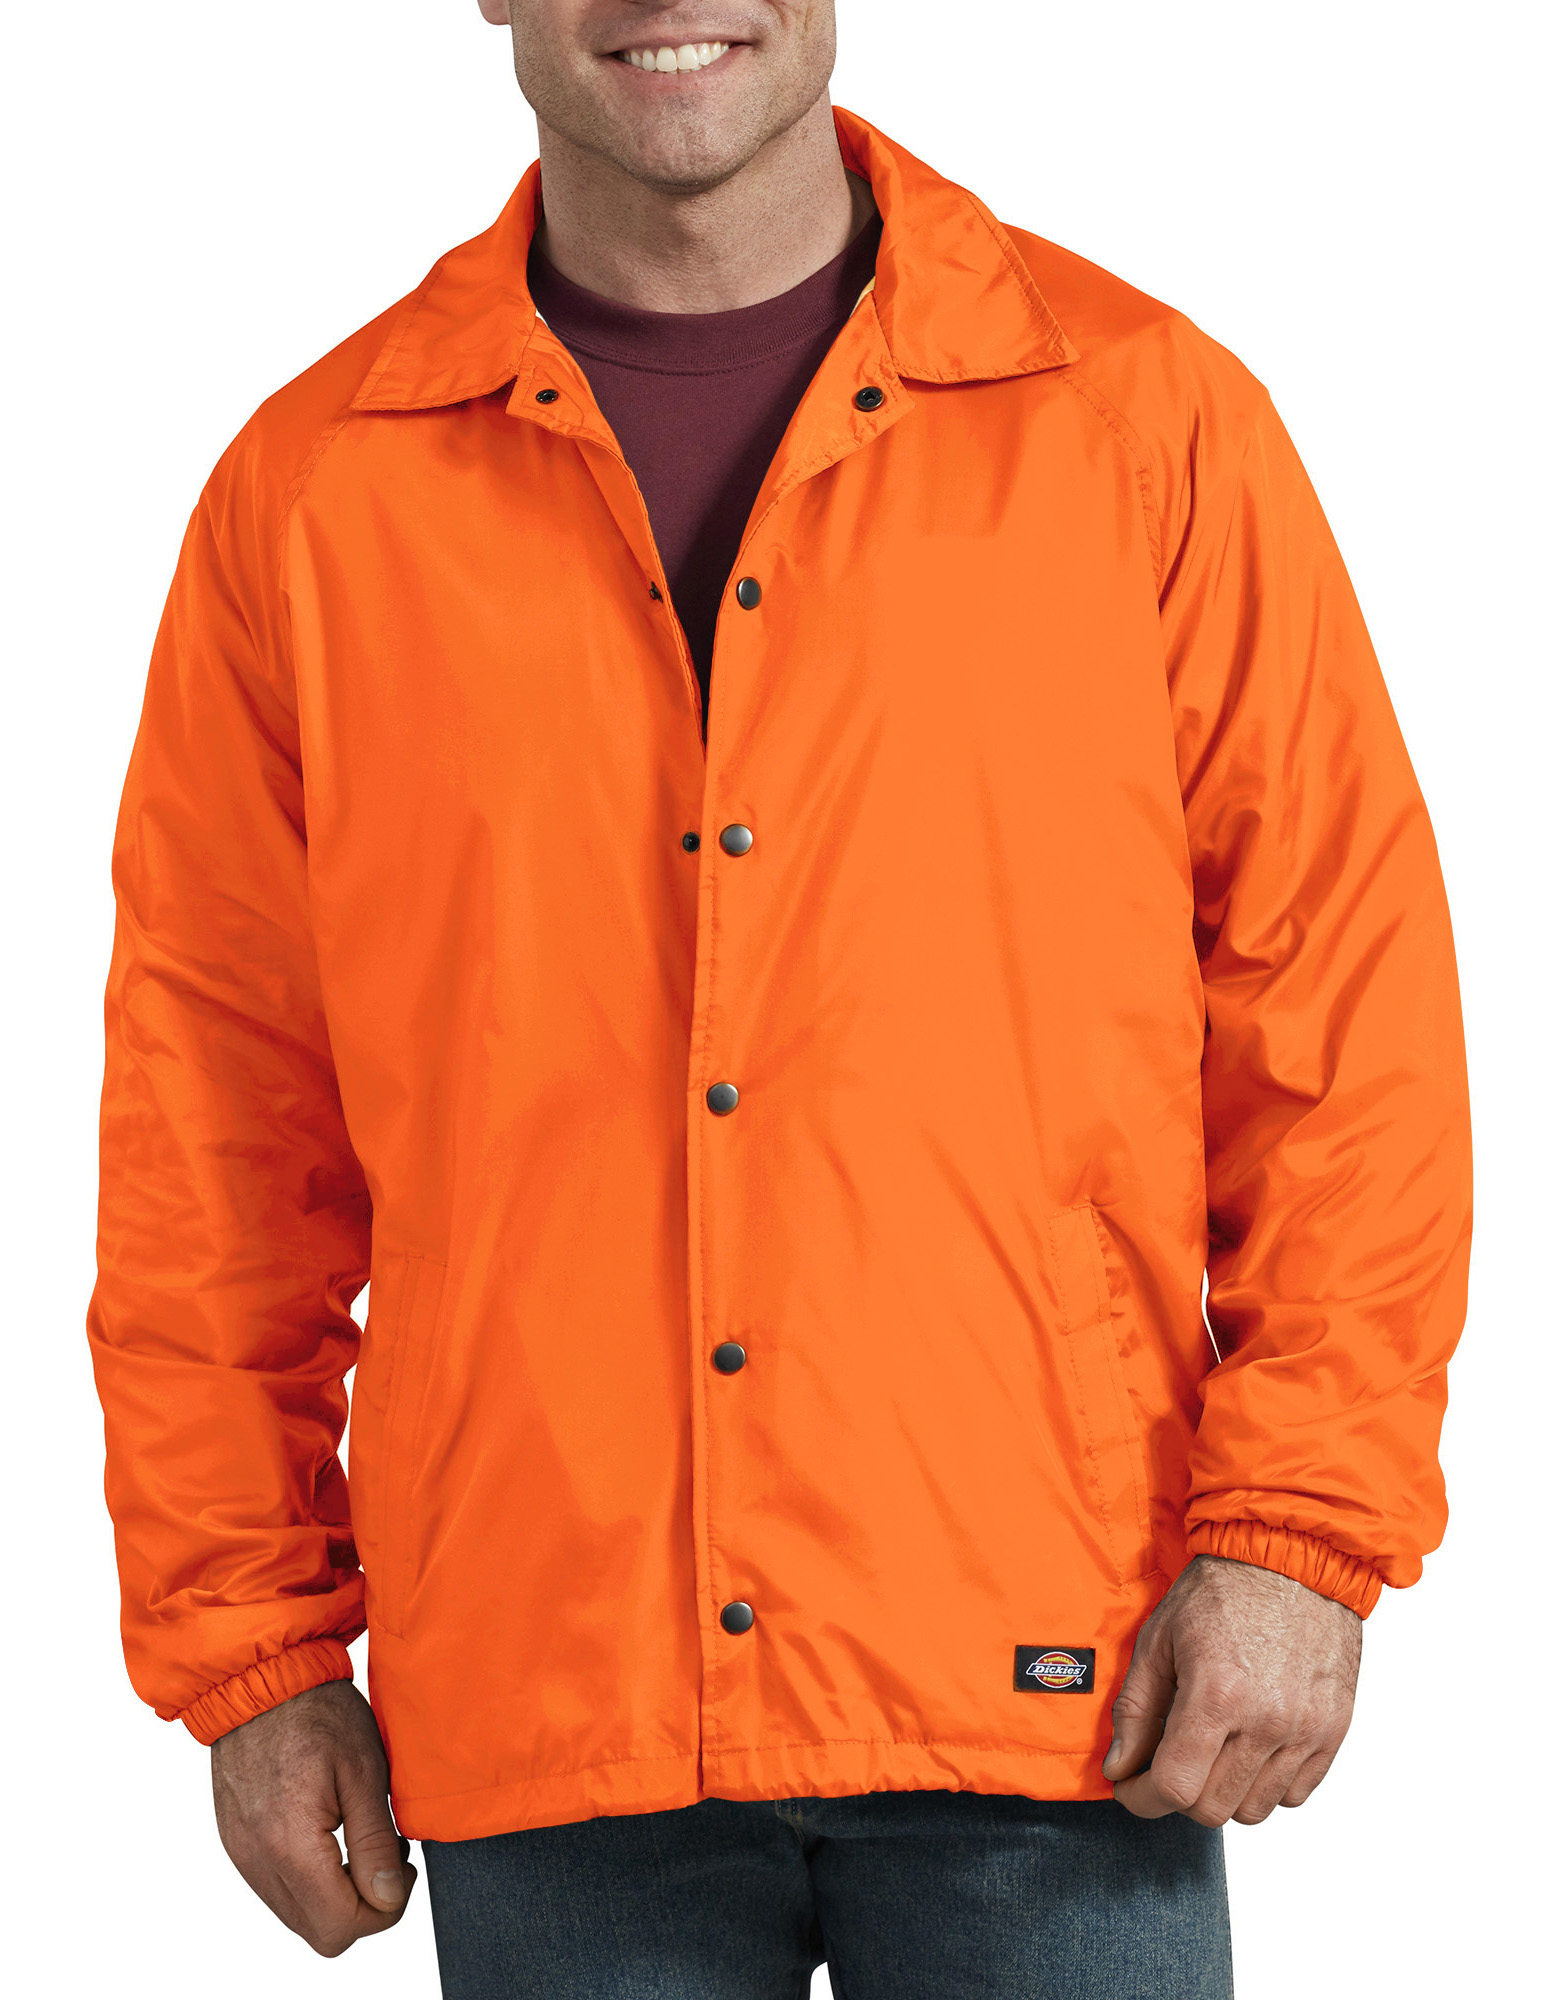 Snap Front Nylon Jacket - Orange (OR)